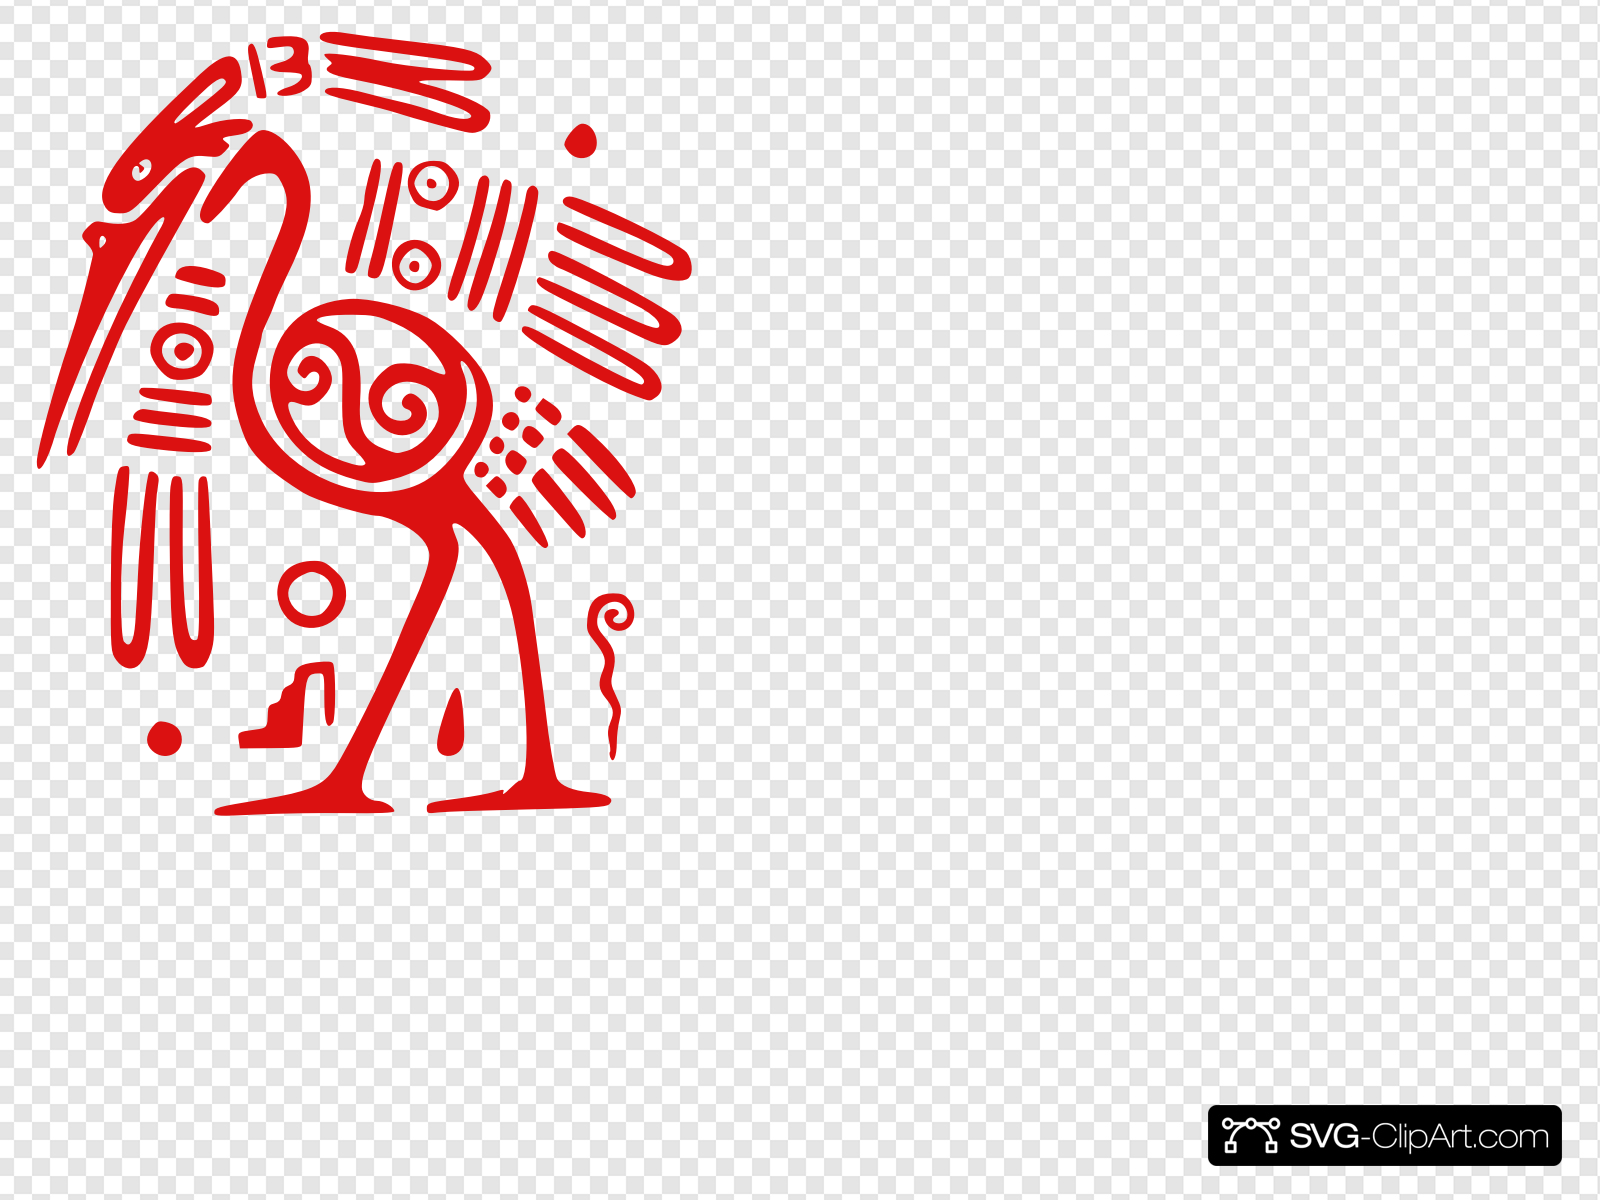 Ancient mexican designs clipart image transparent Ancient Mexican Motif Clip art, Icon and SVG - SVG Clipart image transparent